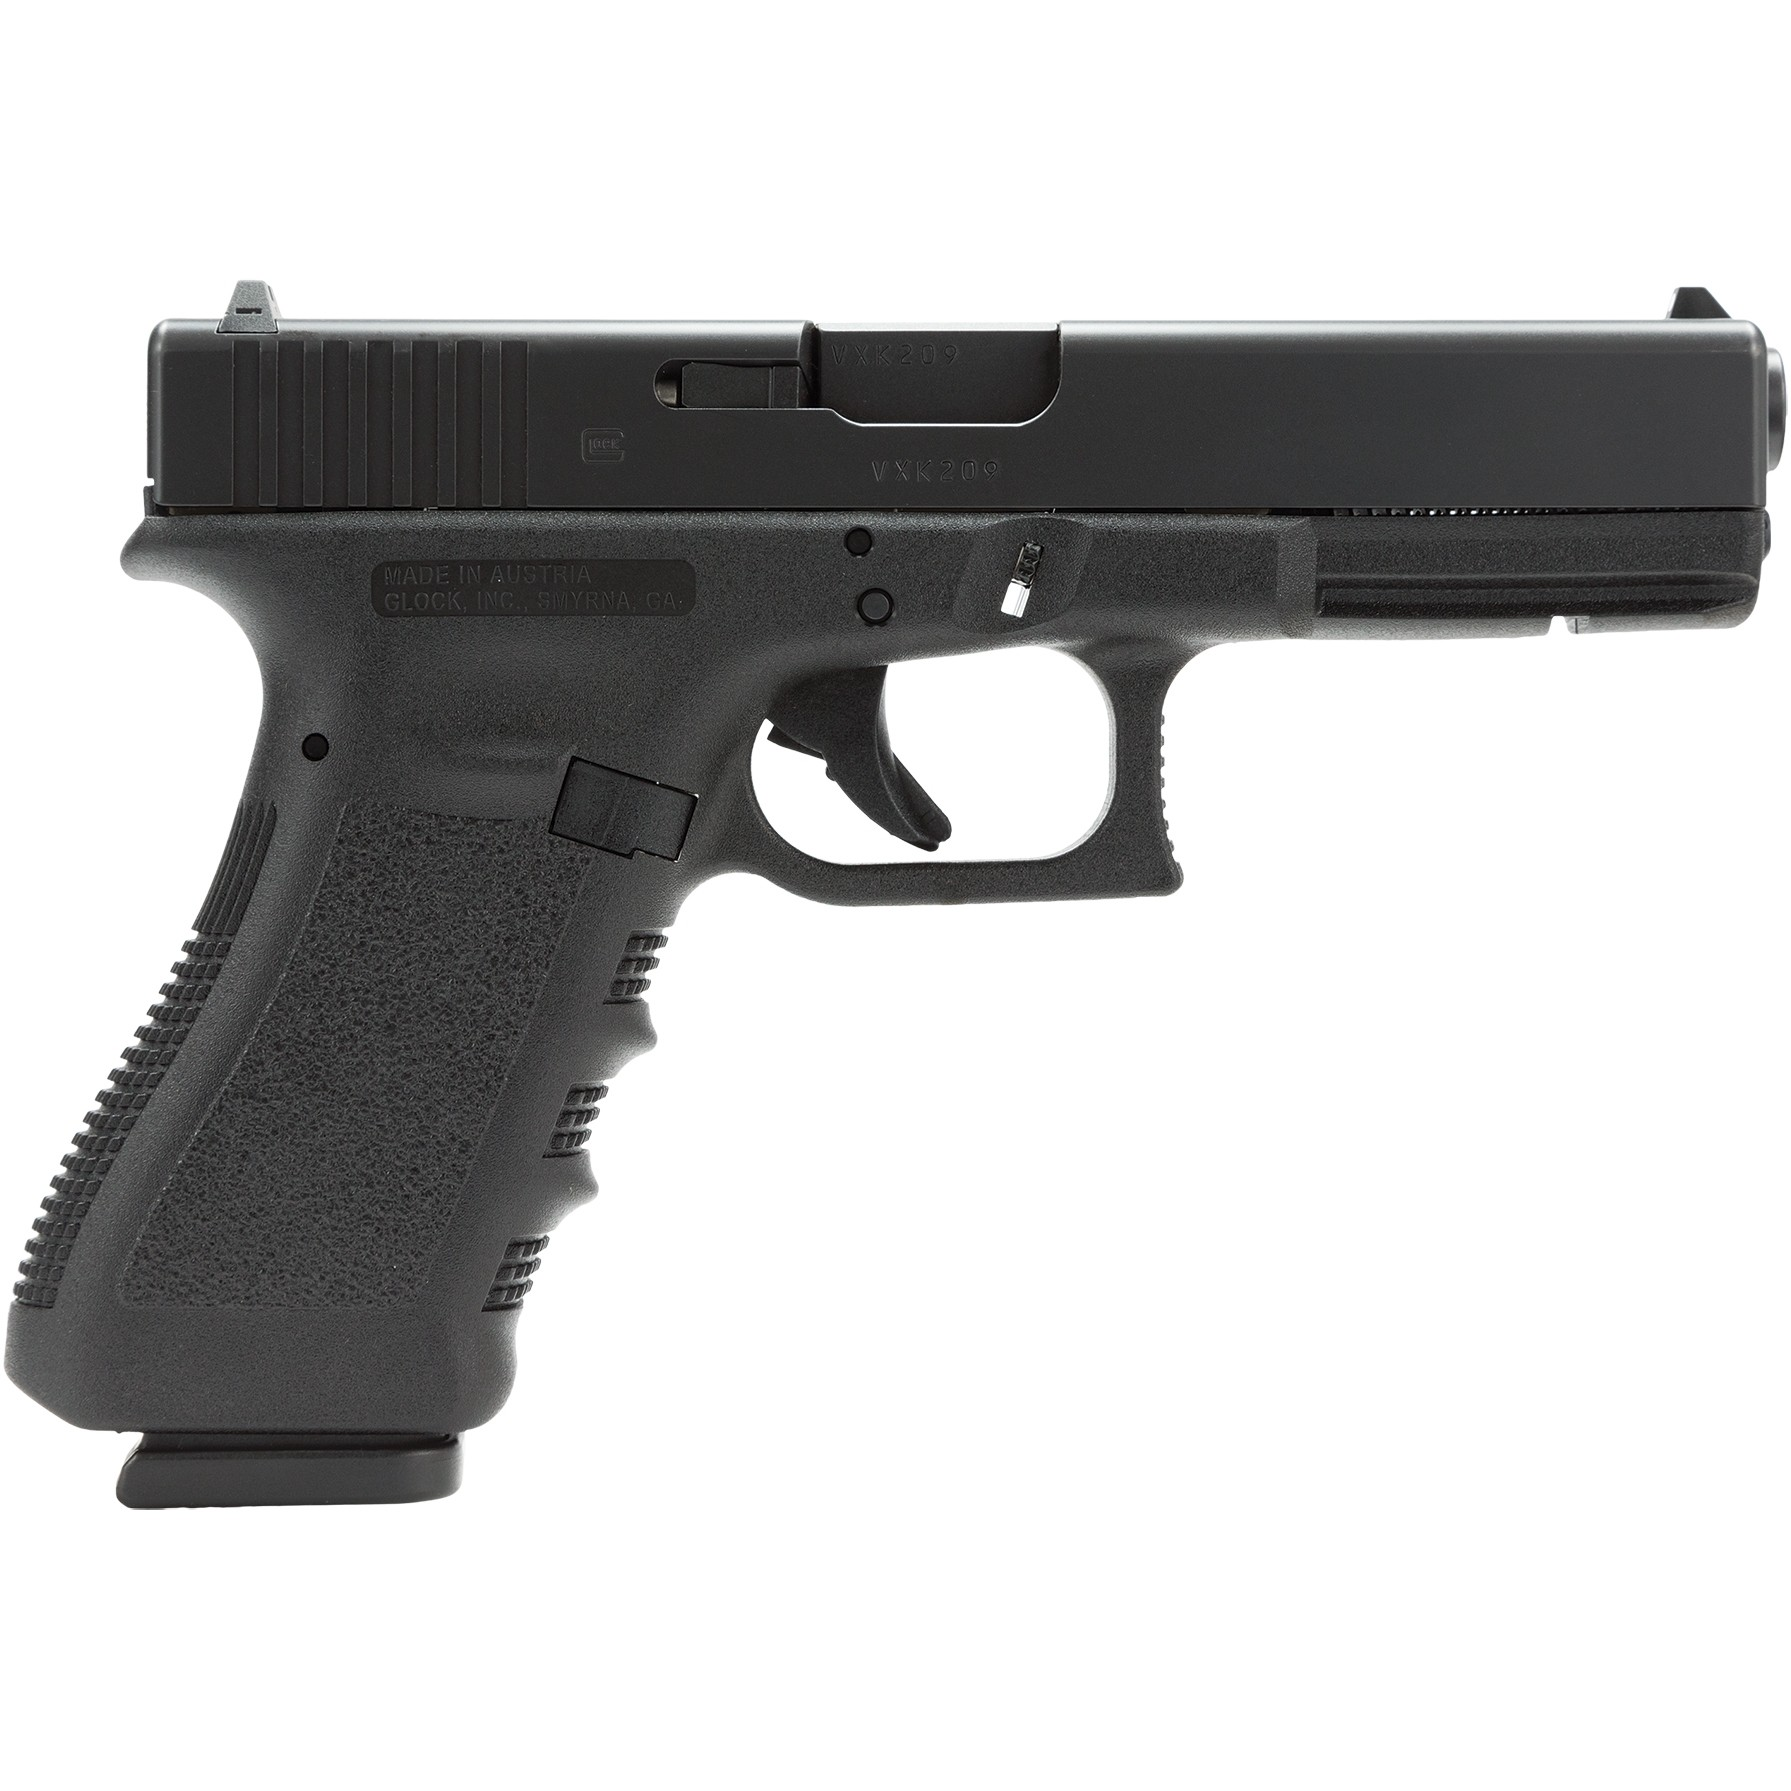 Glockr OEM 17 Gen 3 9mm Luger